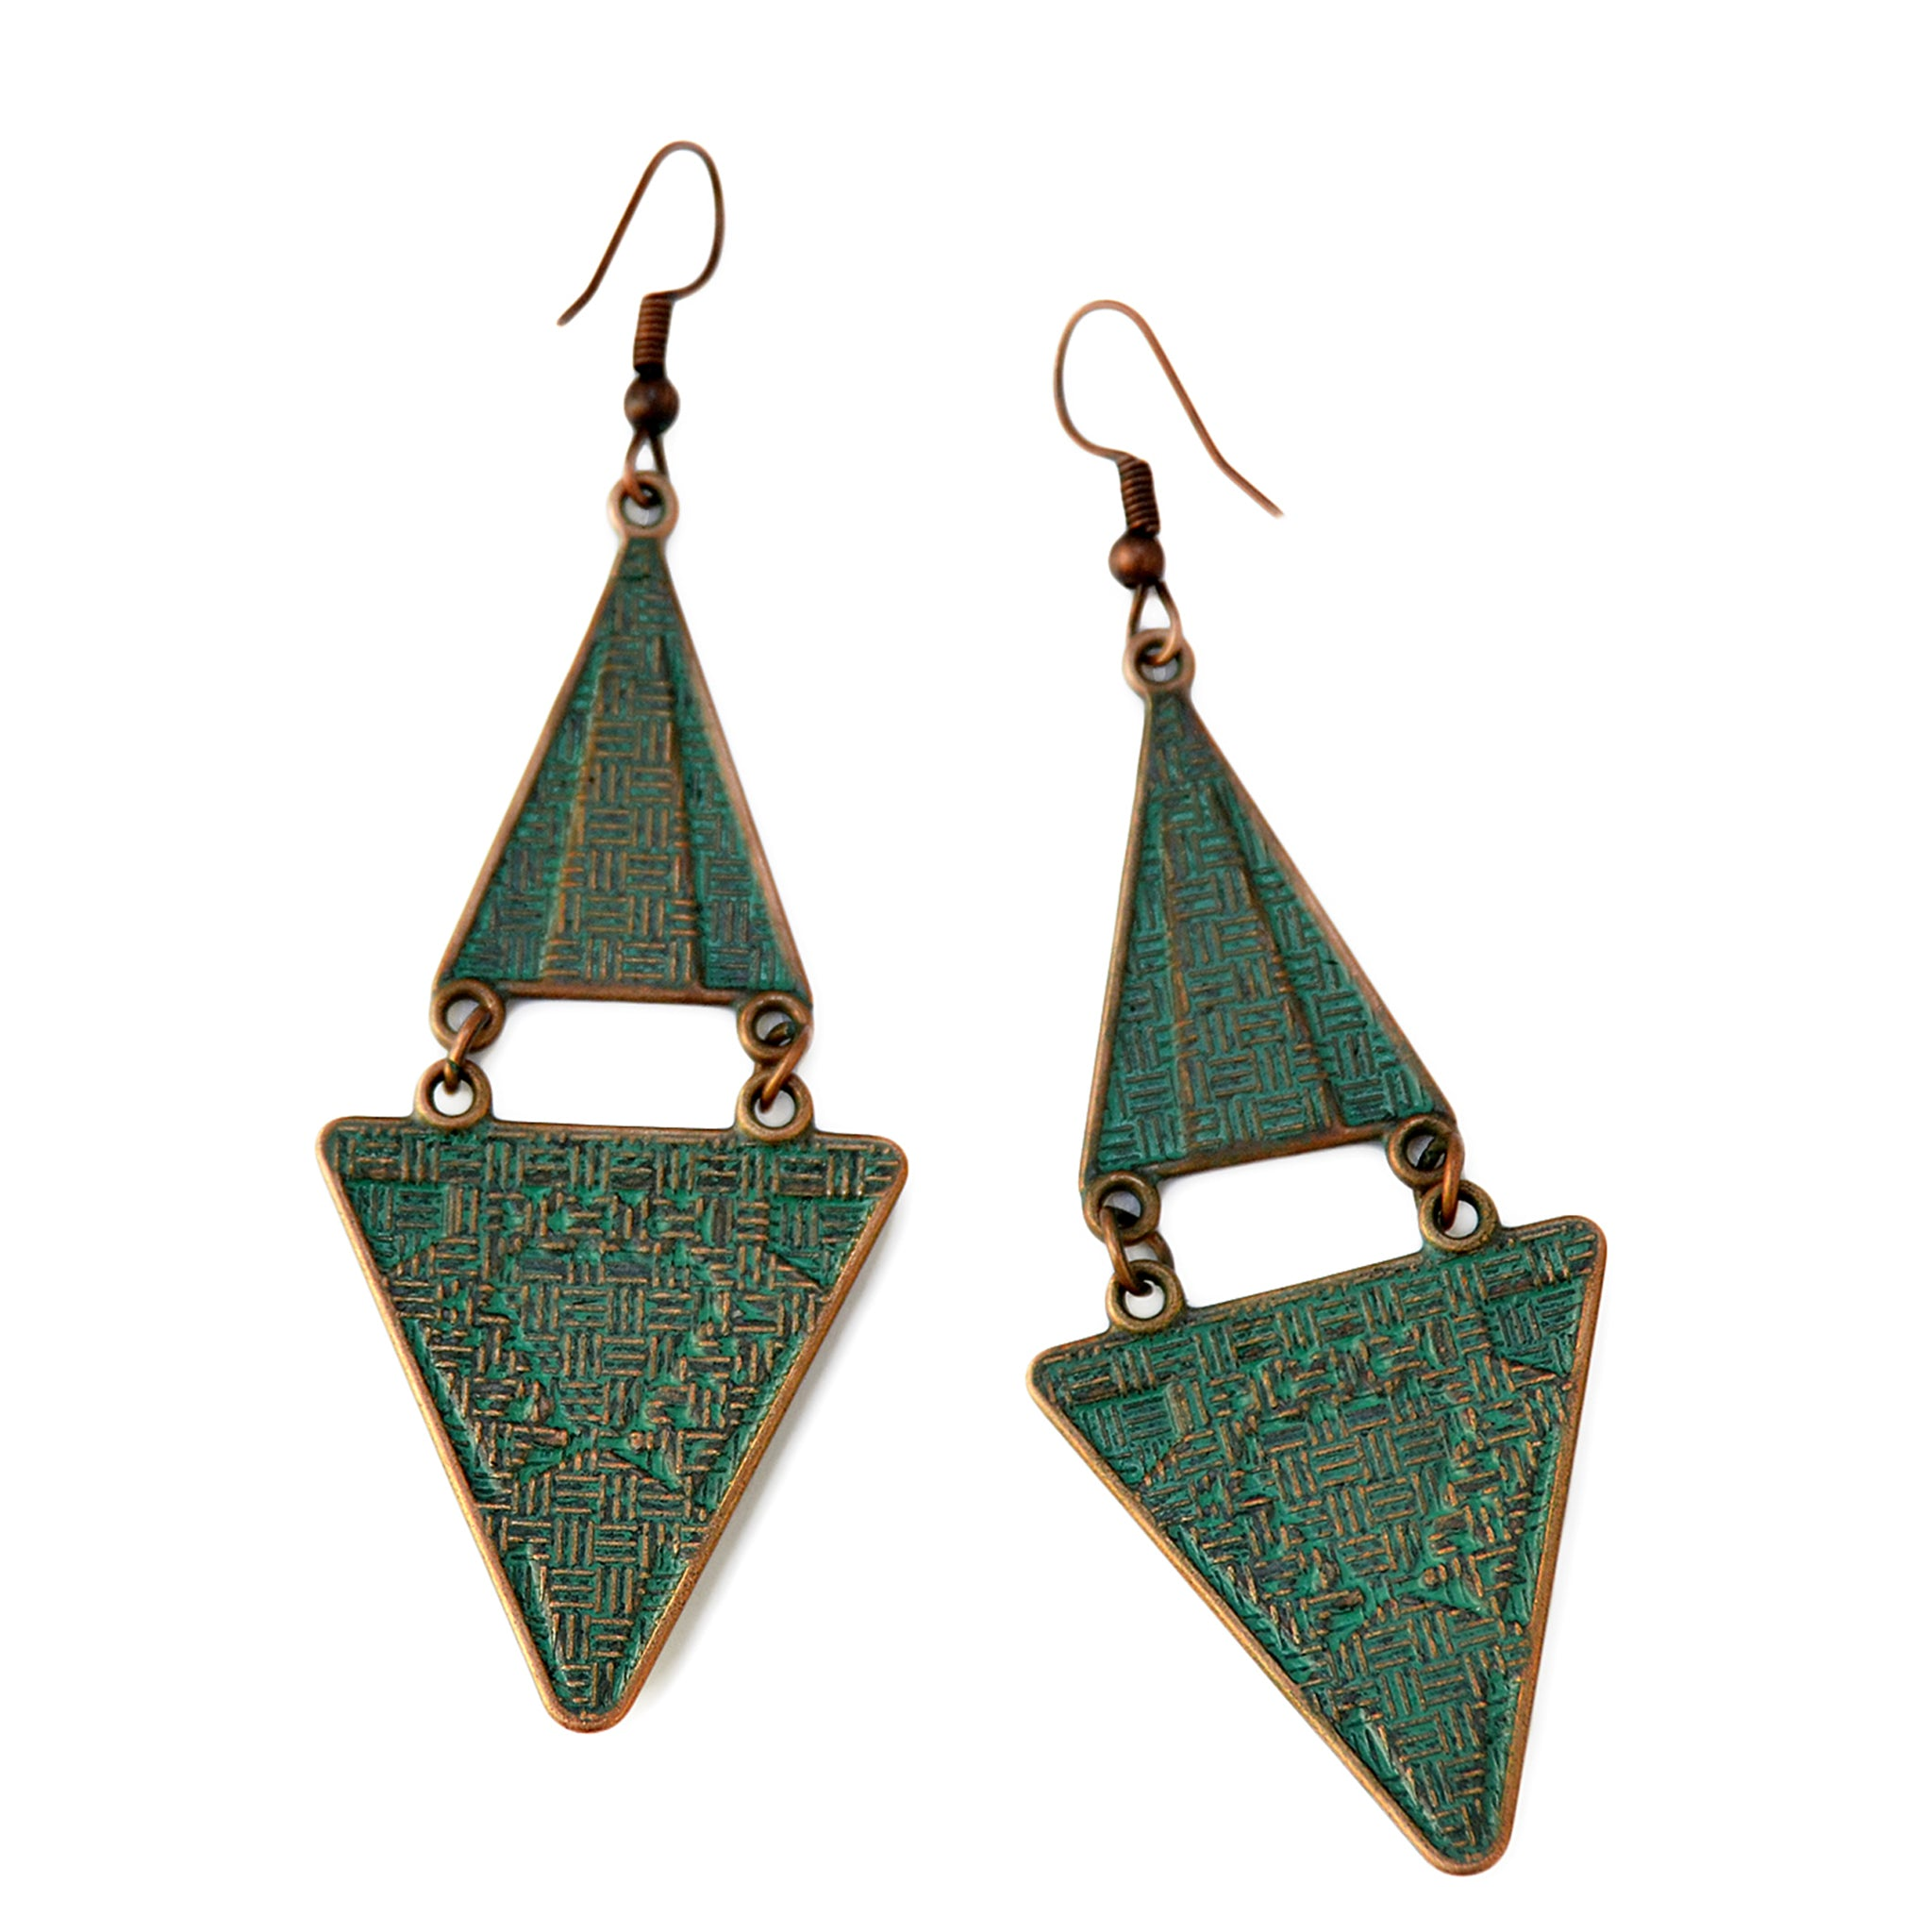 Verdigris patina triangle earrings